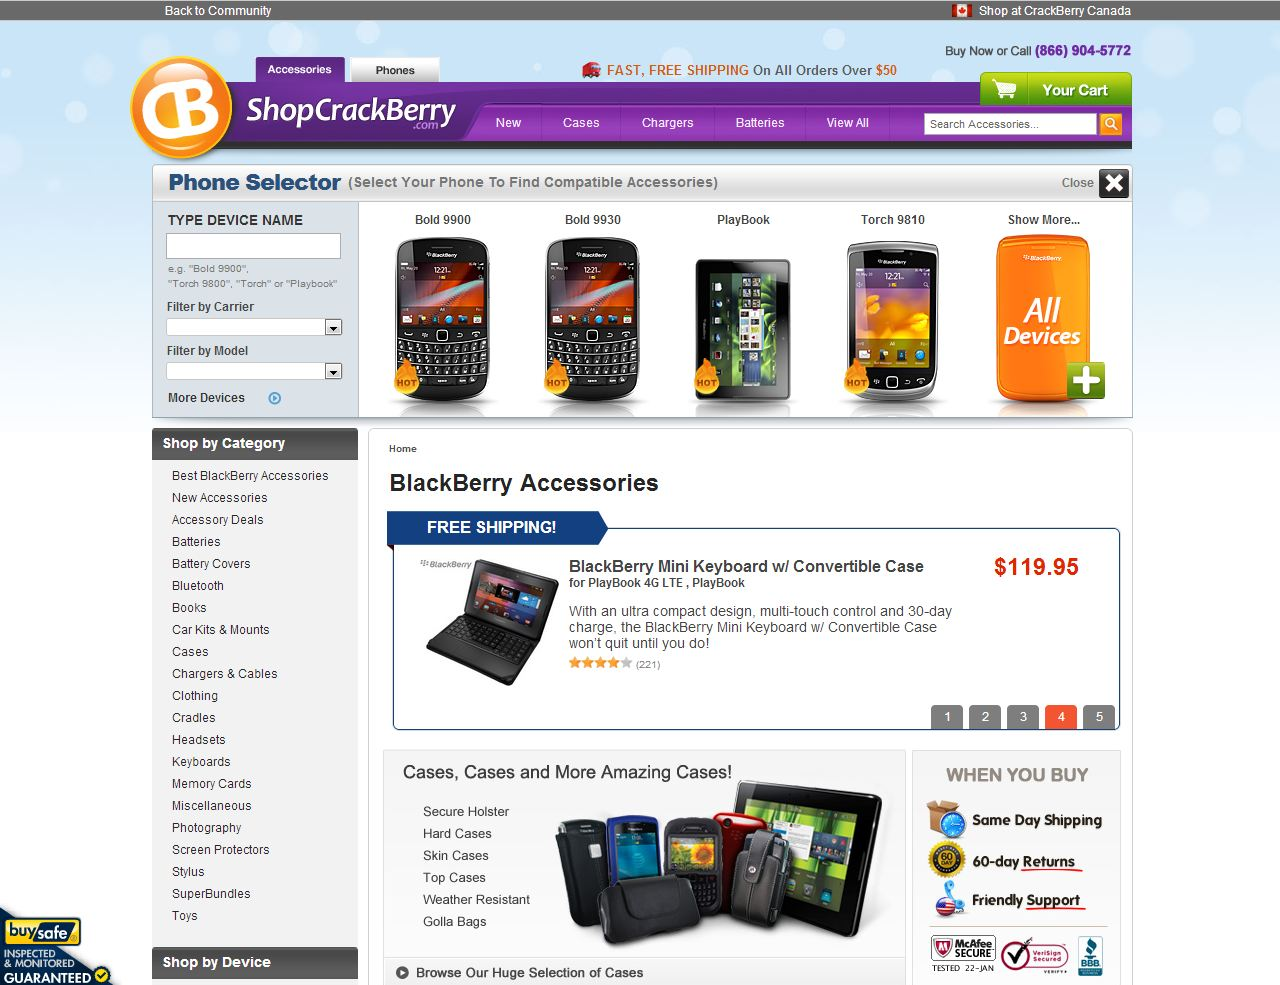 shop.crackberry